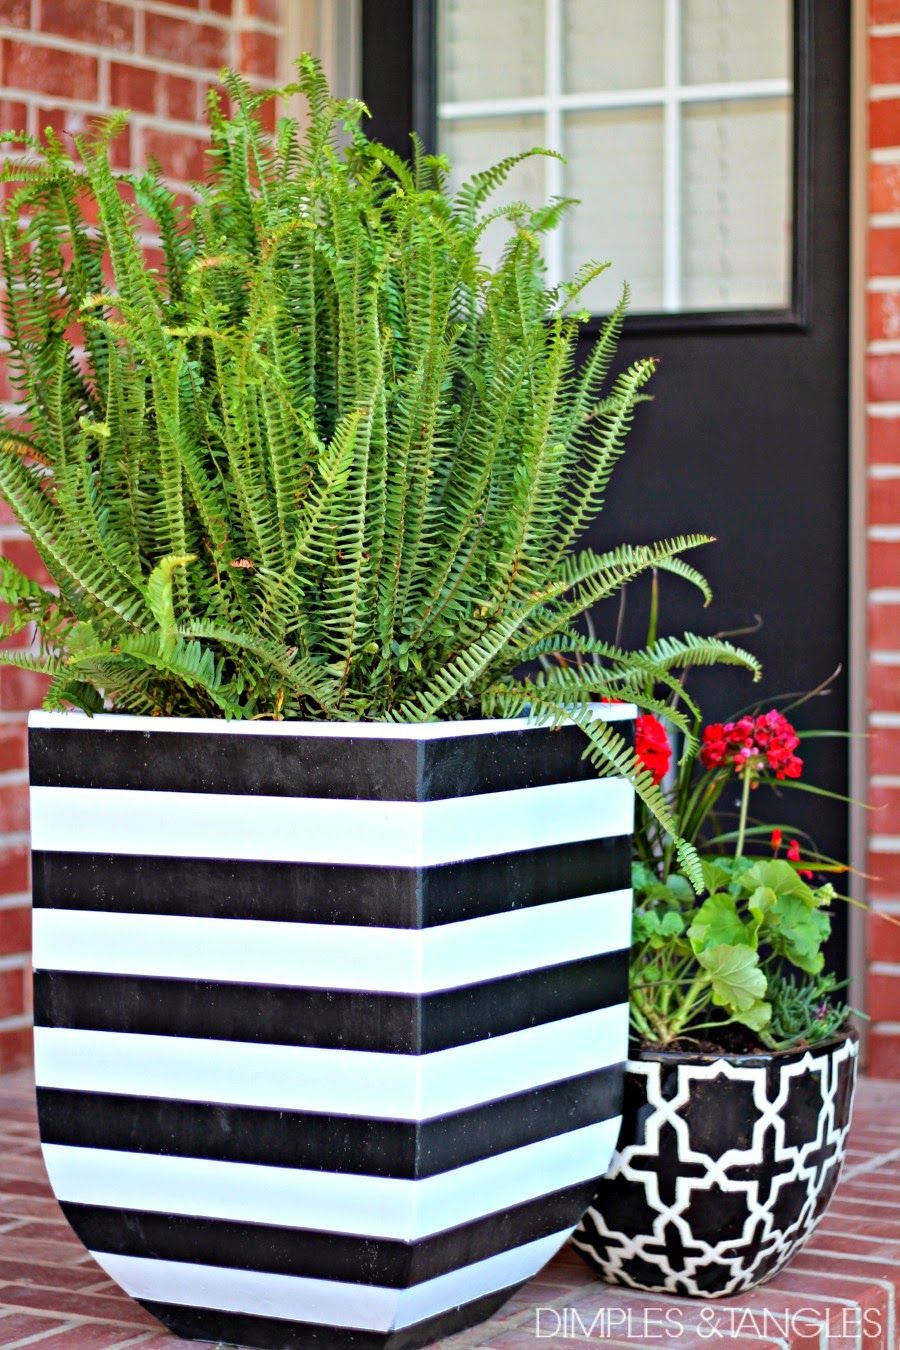 Dimples And Tangles Diy Black White Striped Pots